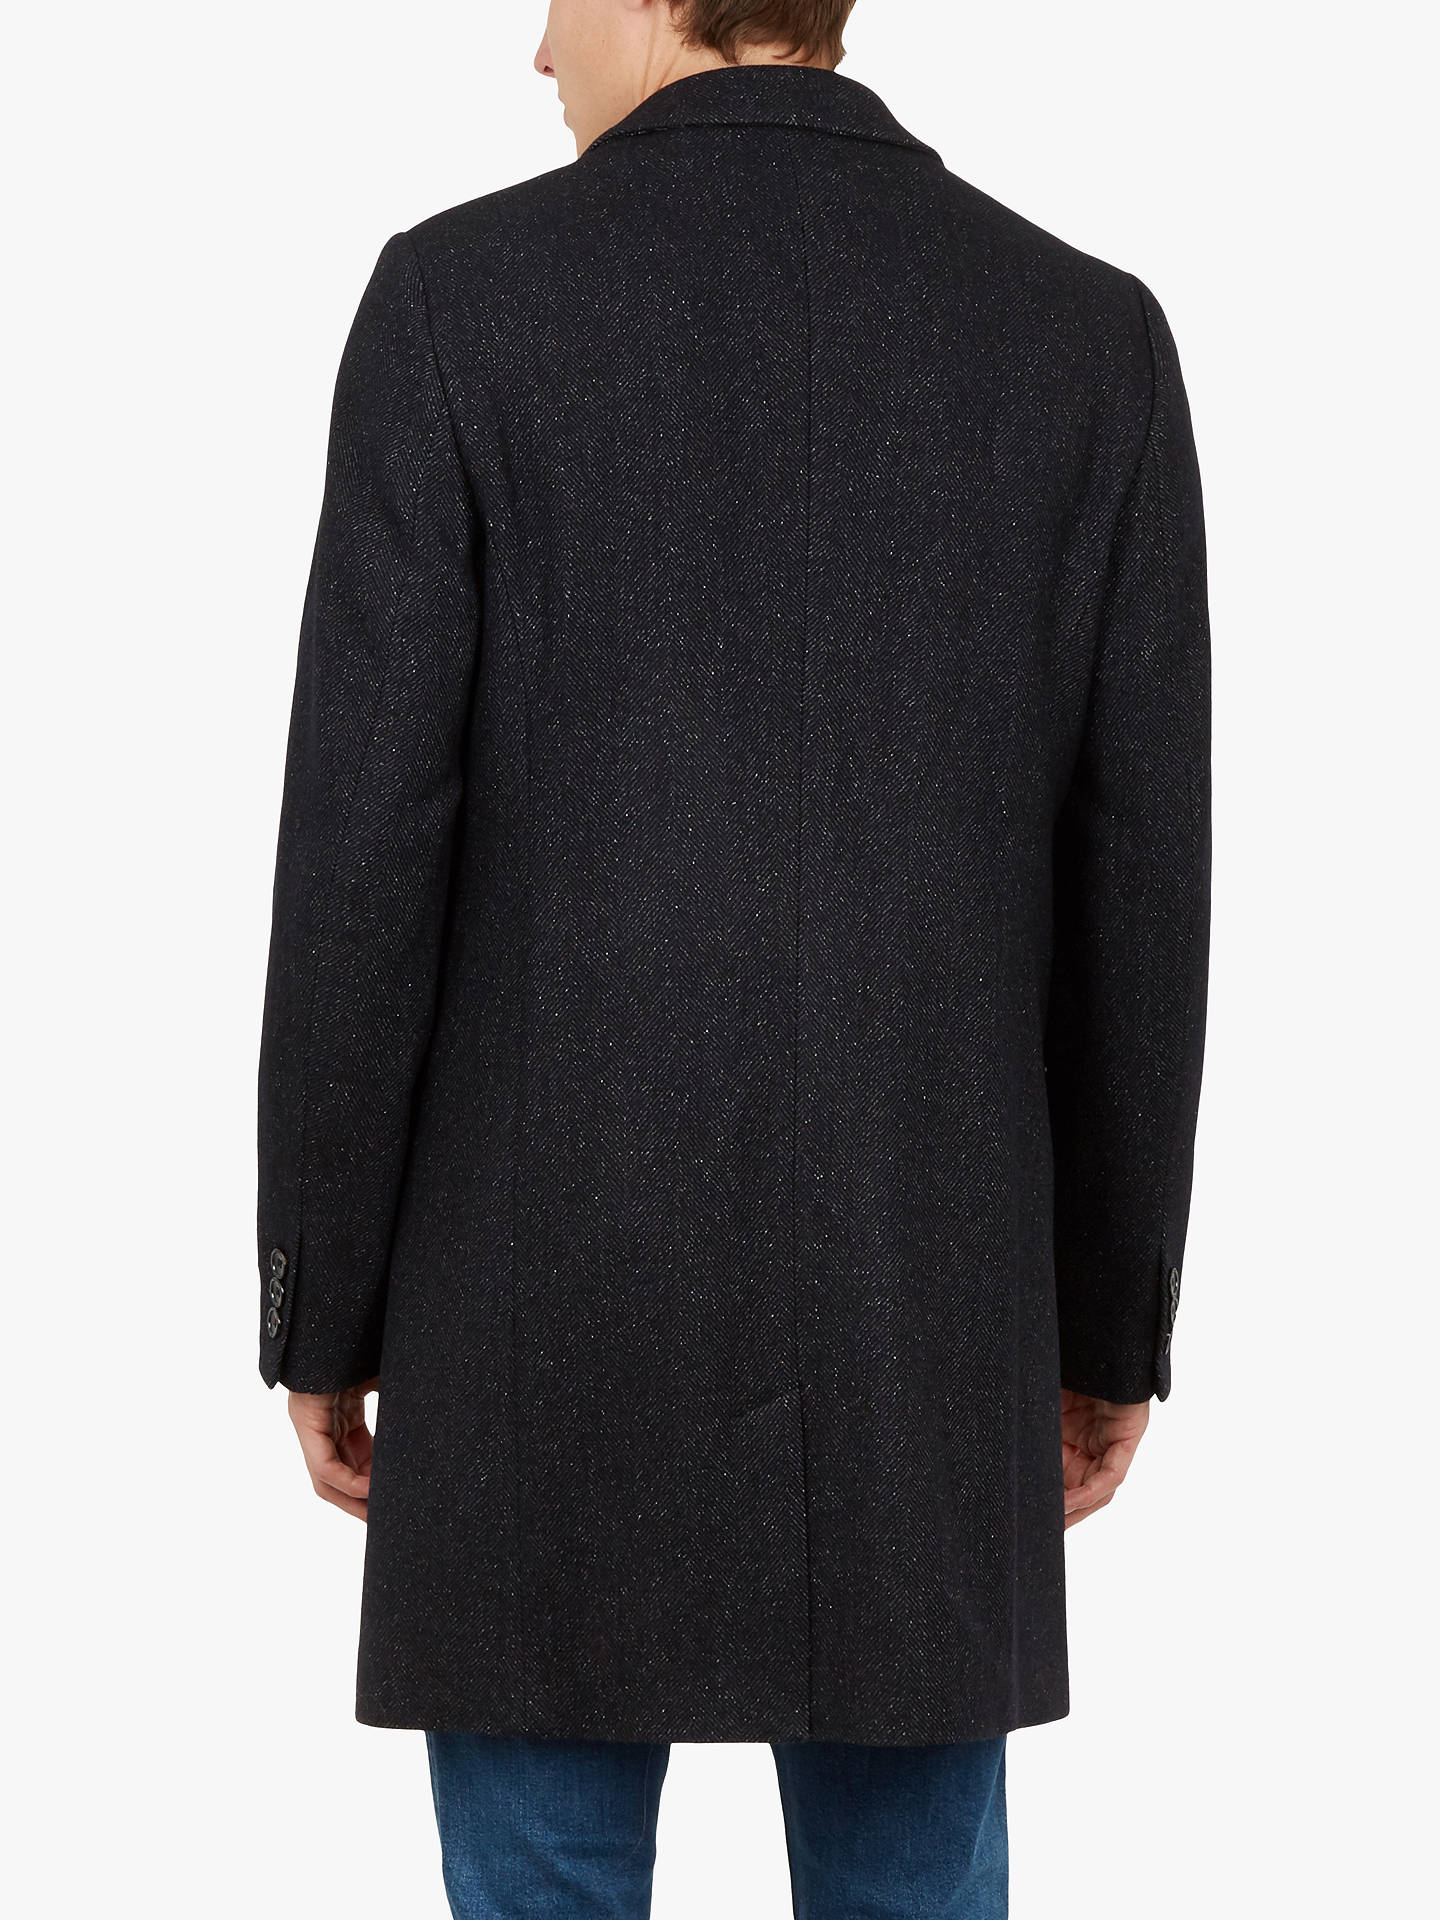 BuyTed Baker Cambear 2 Button Overcoat, Navy, M Online at johnlewis.com